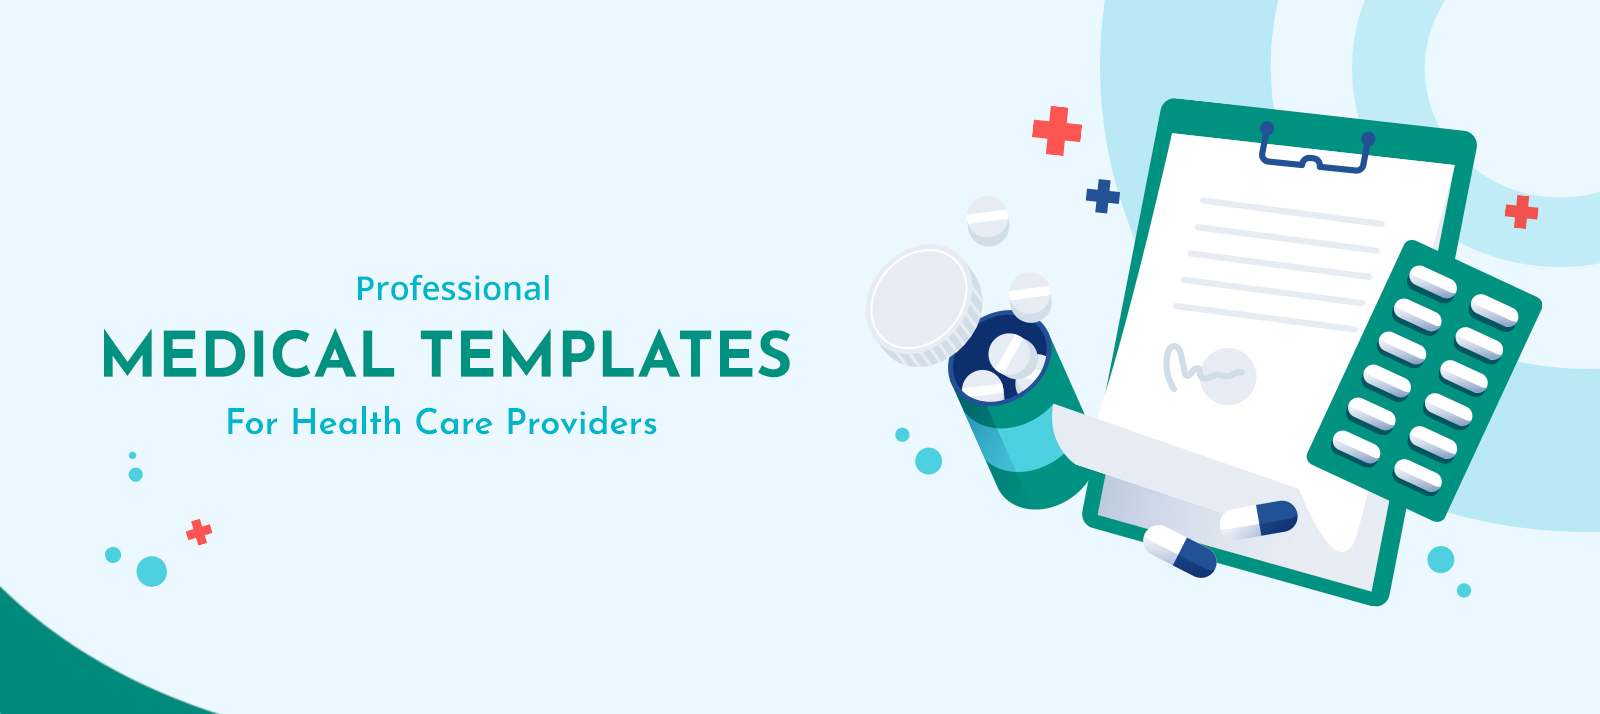 11 Best Professional Medical Templates For HealthCare Providers